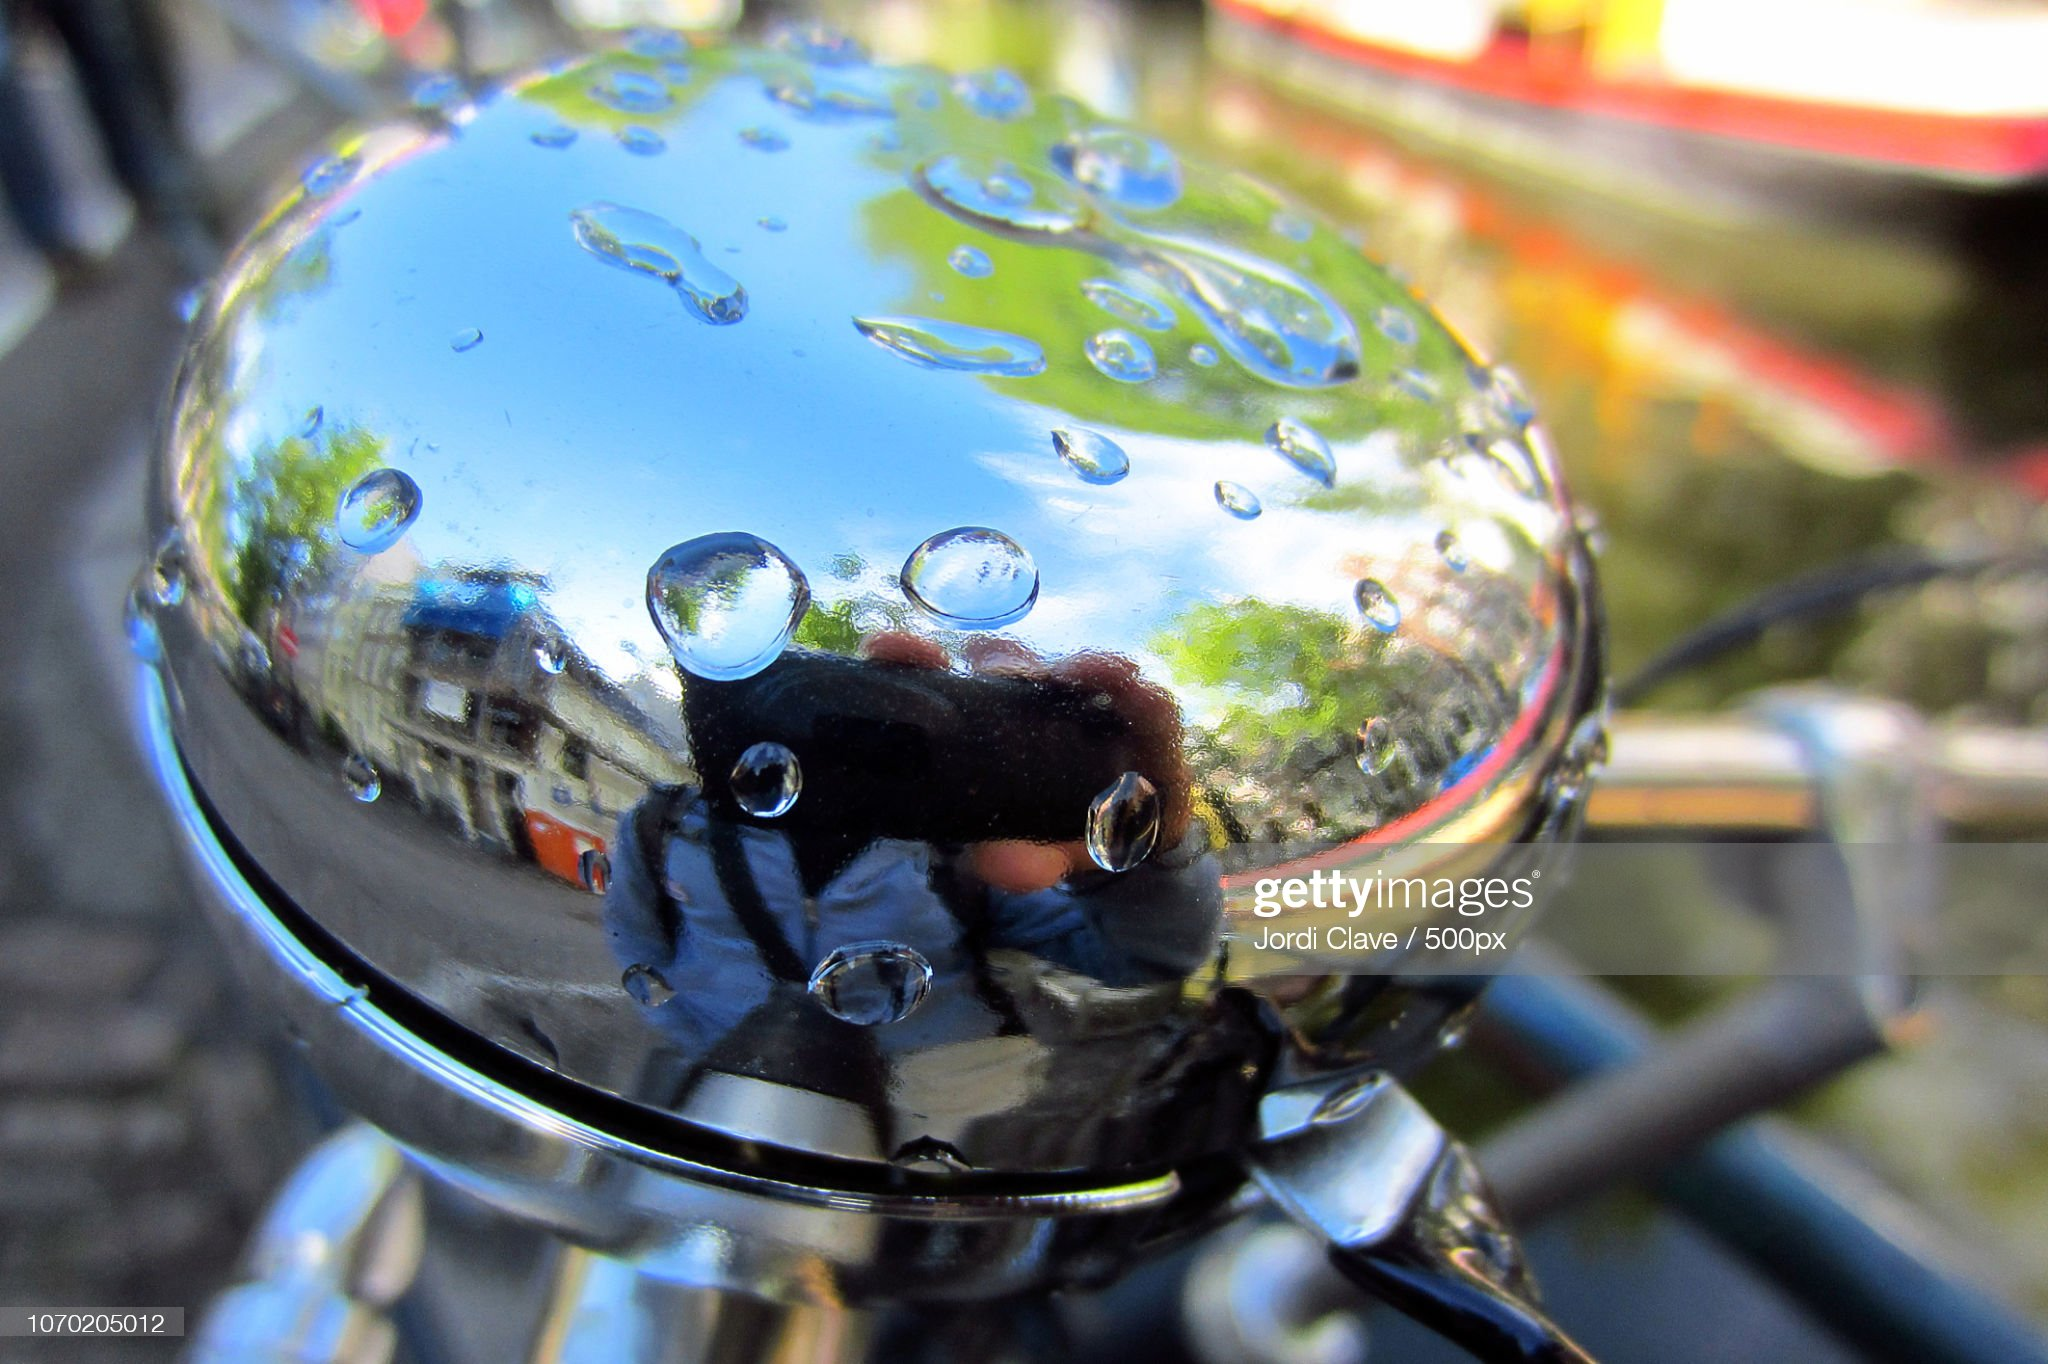 Selfie in a bicycle bell : Stock Photo